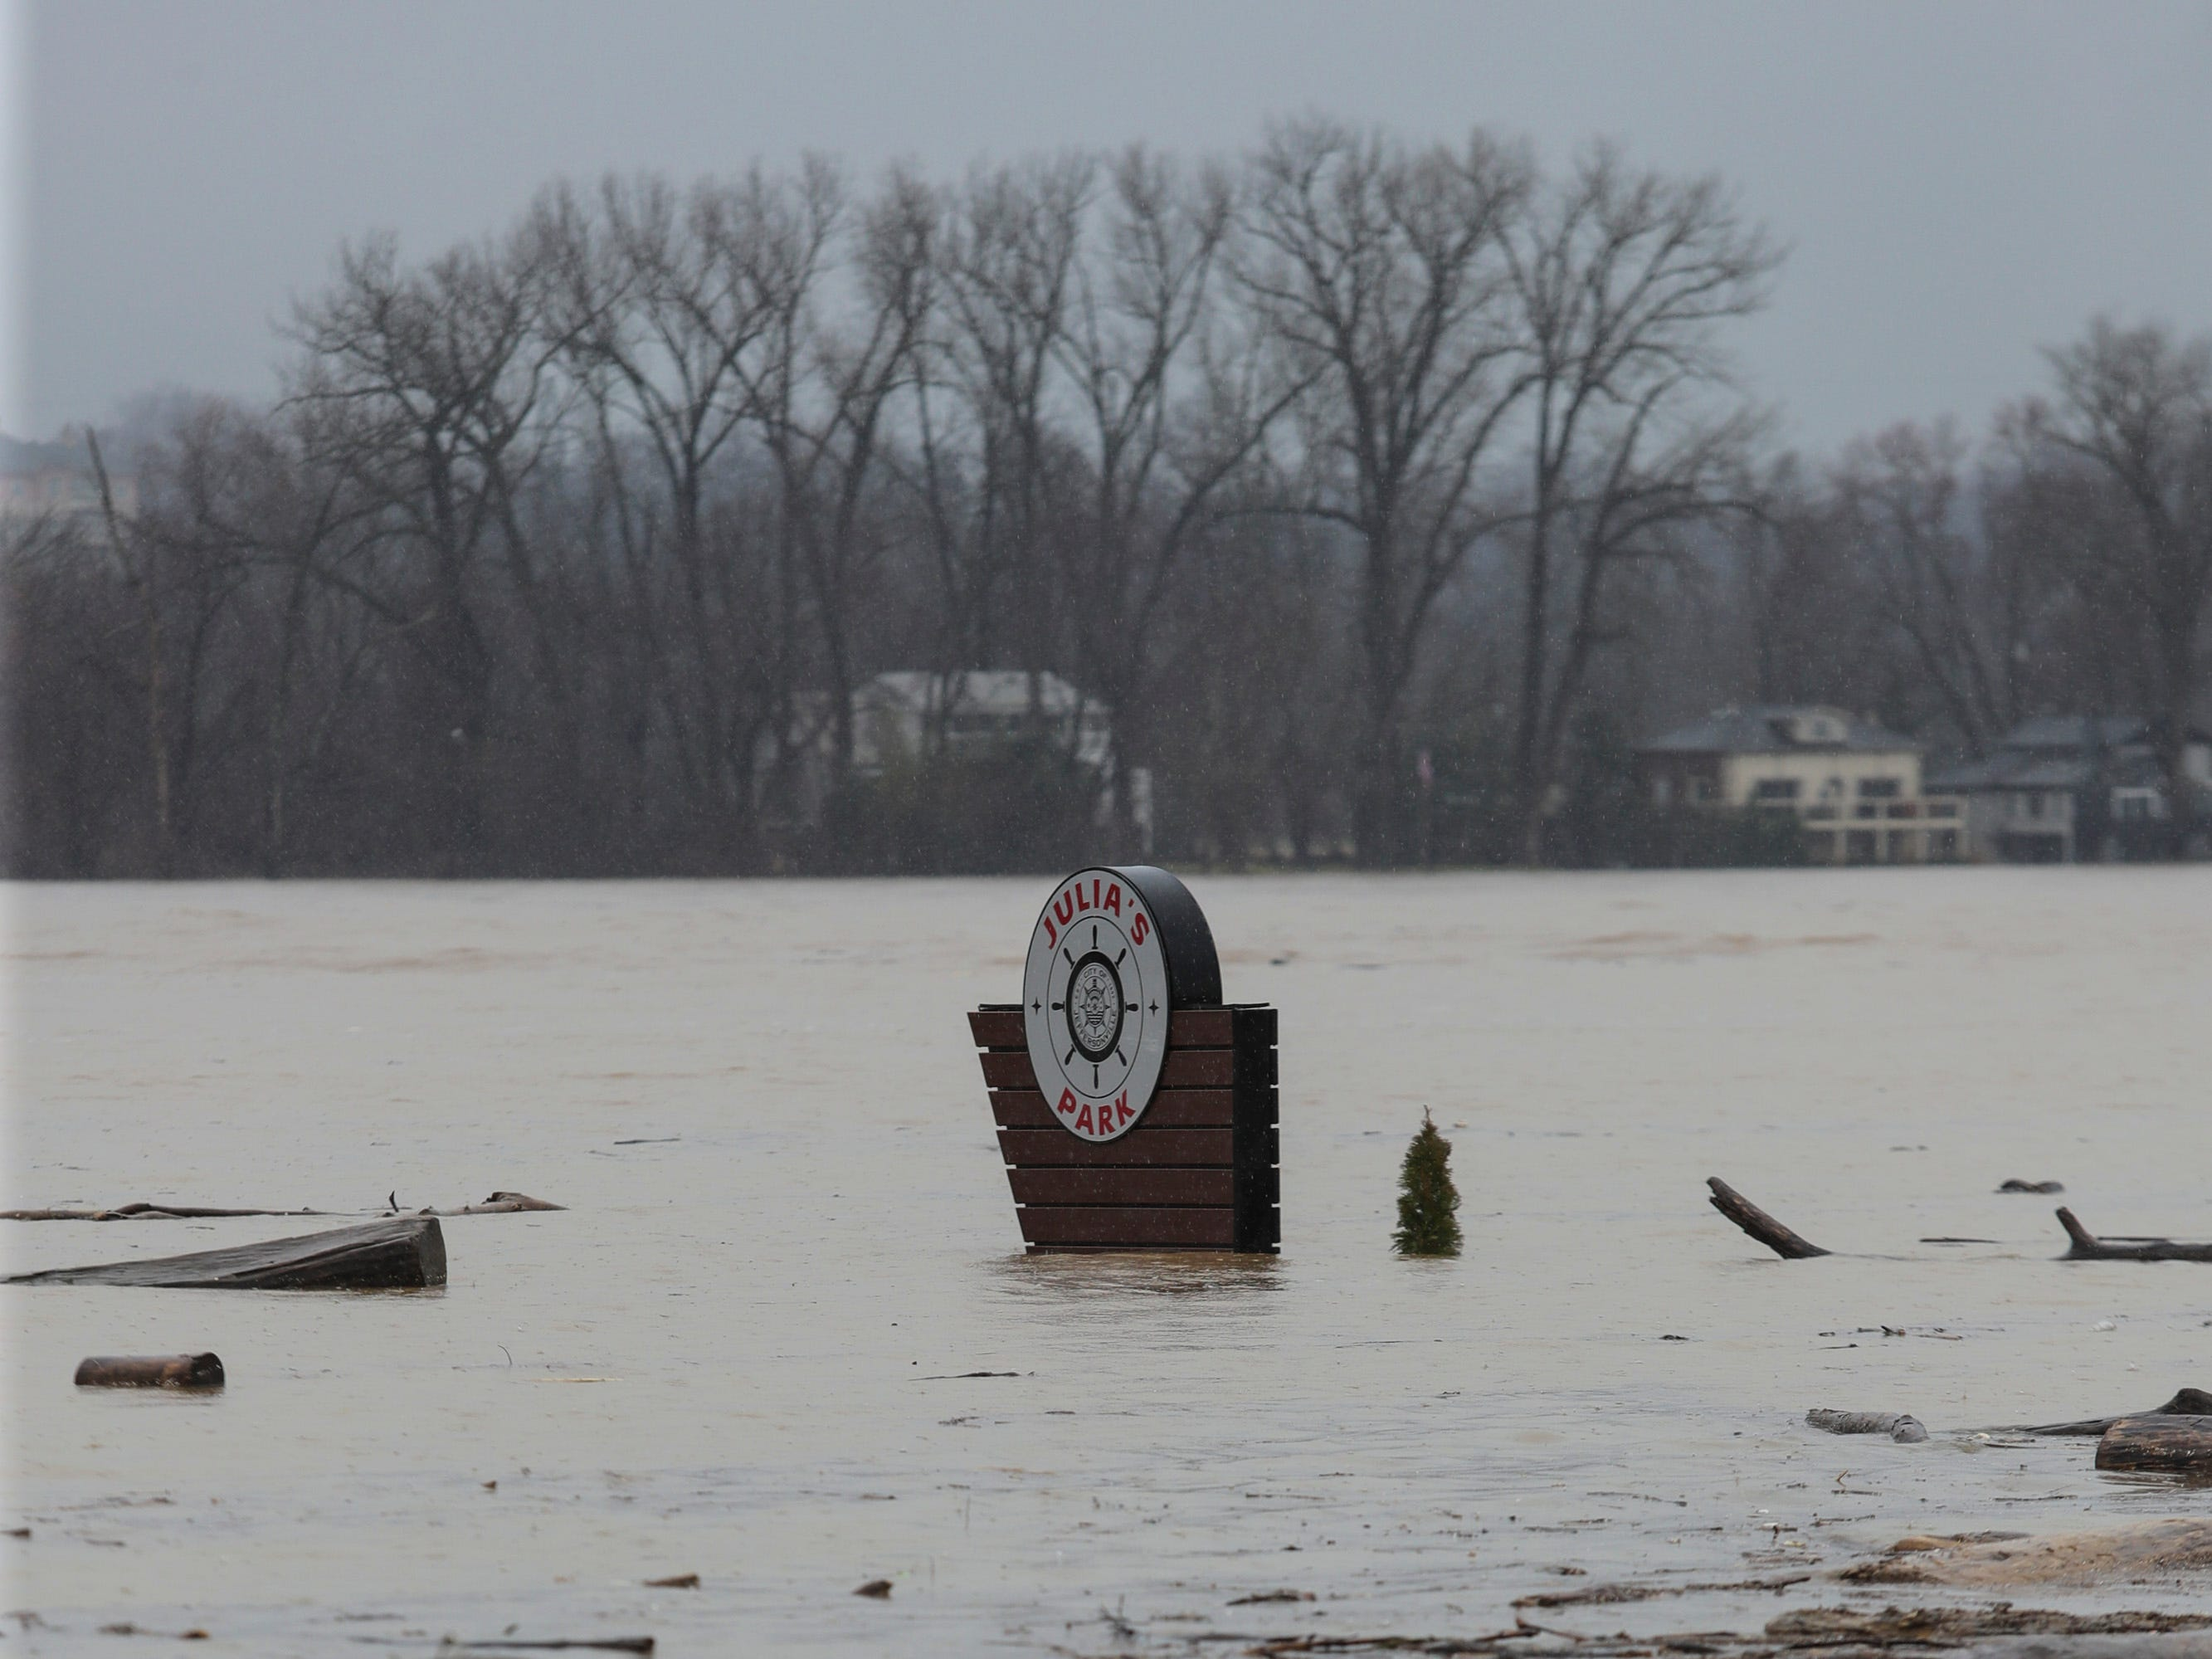 A Julia's Park sign stands flooded in Utica, Ind. as Ohio River water levels begin to rise. Feb. 11, 2019